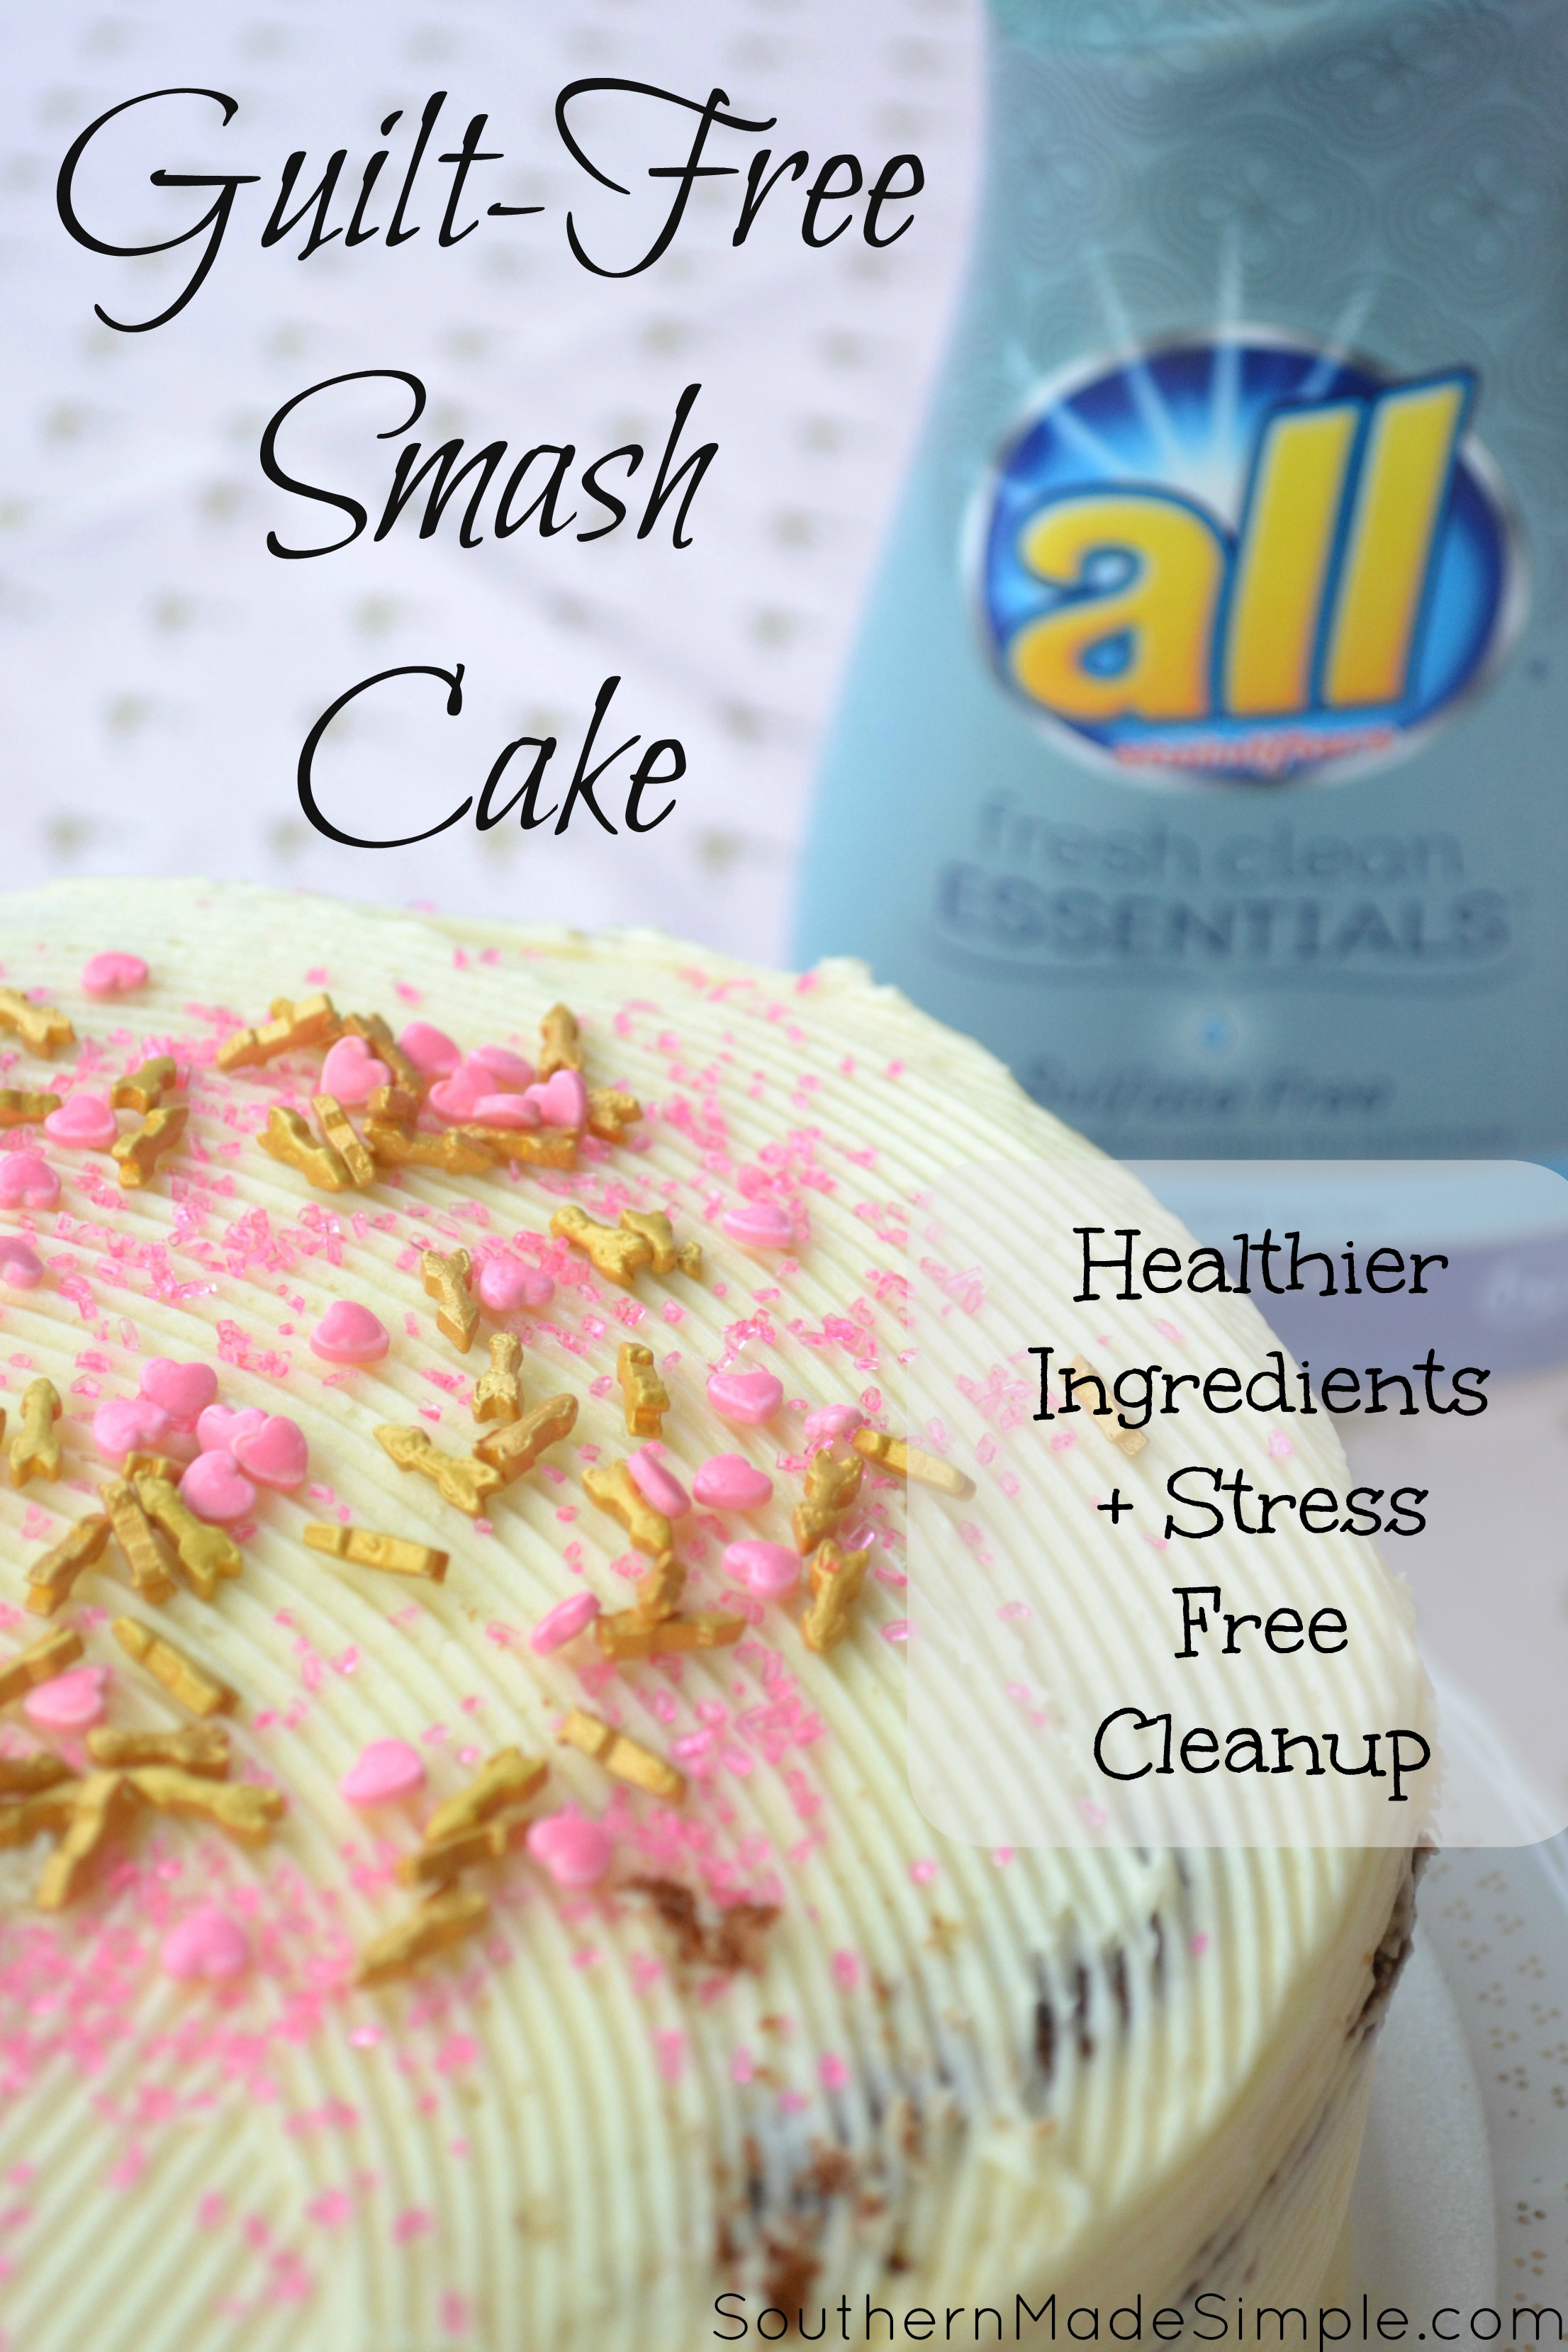 Guilt-free smash cake: Healthy Ingredients + Super Easy Cleanup! #allEssentials #ad